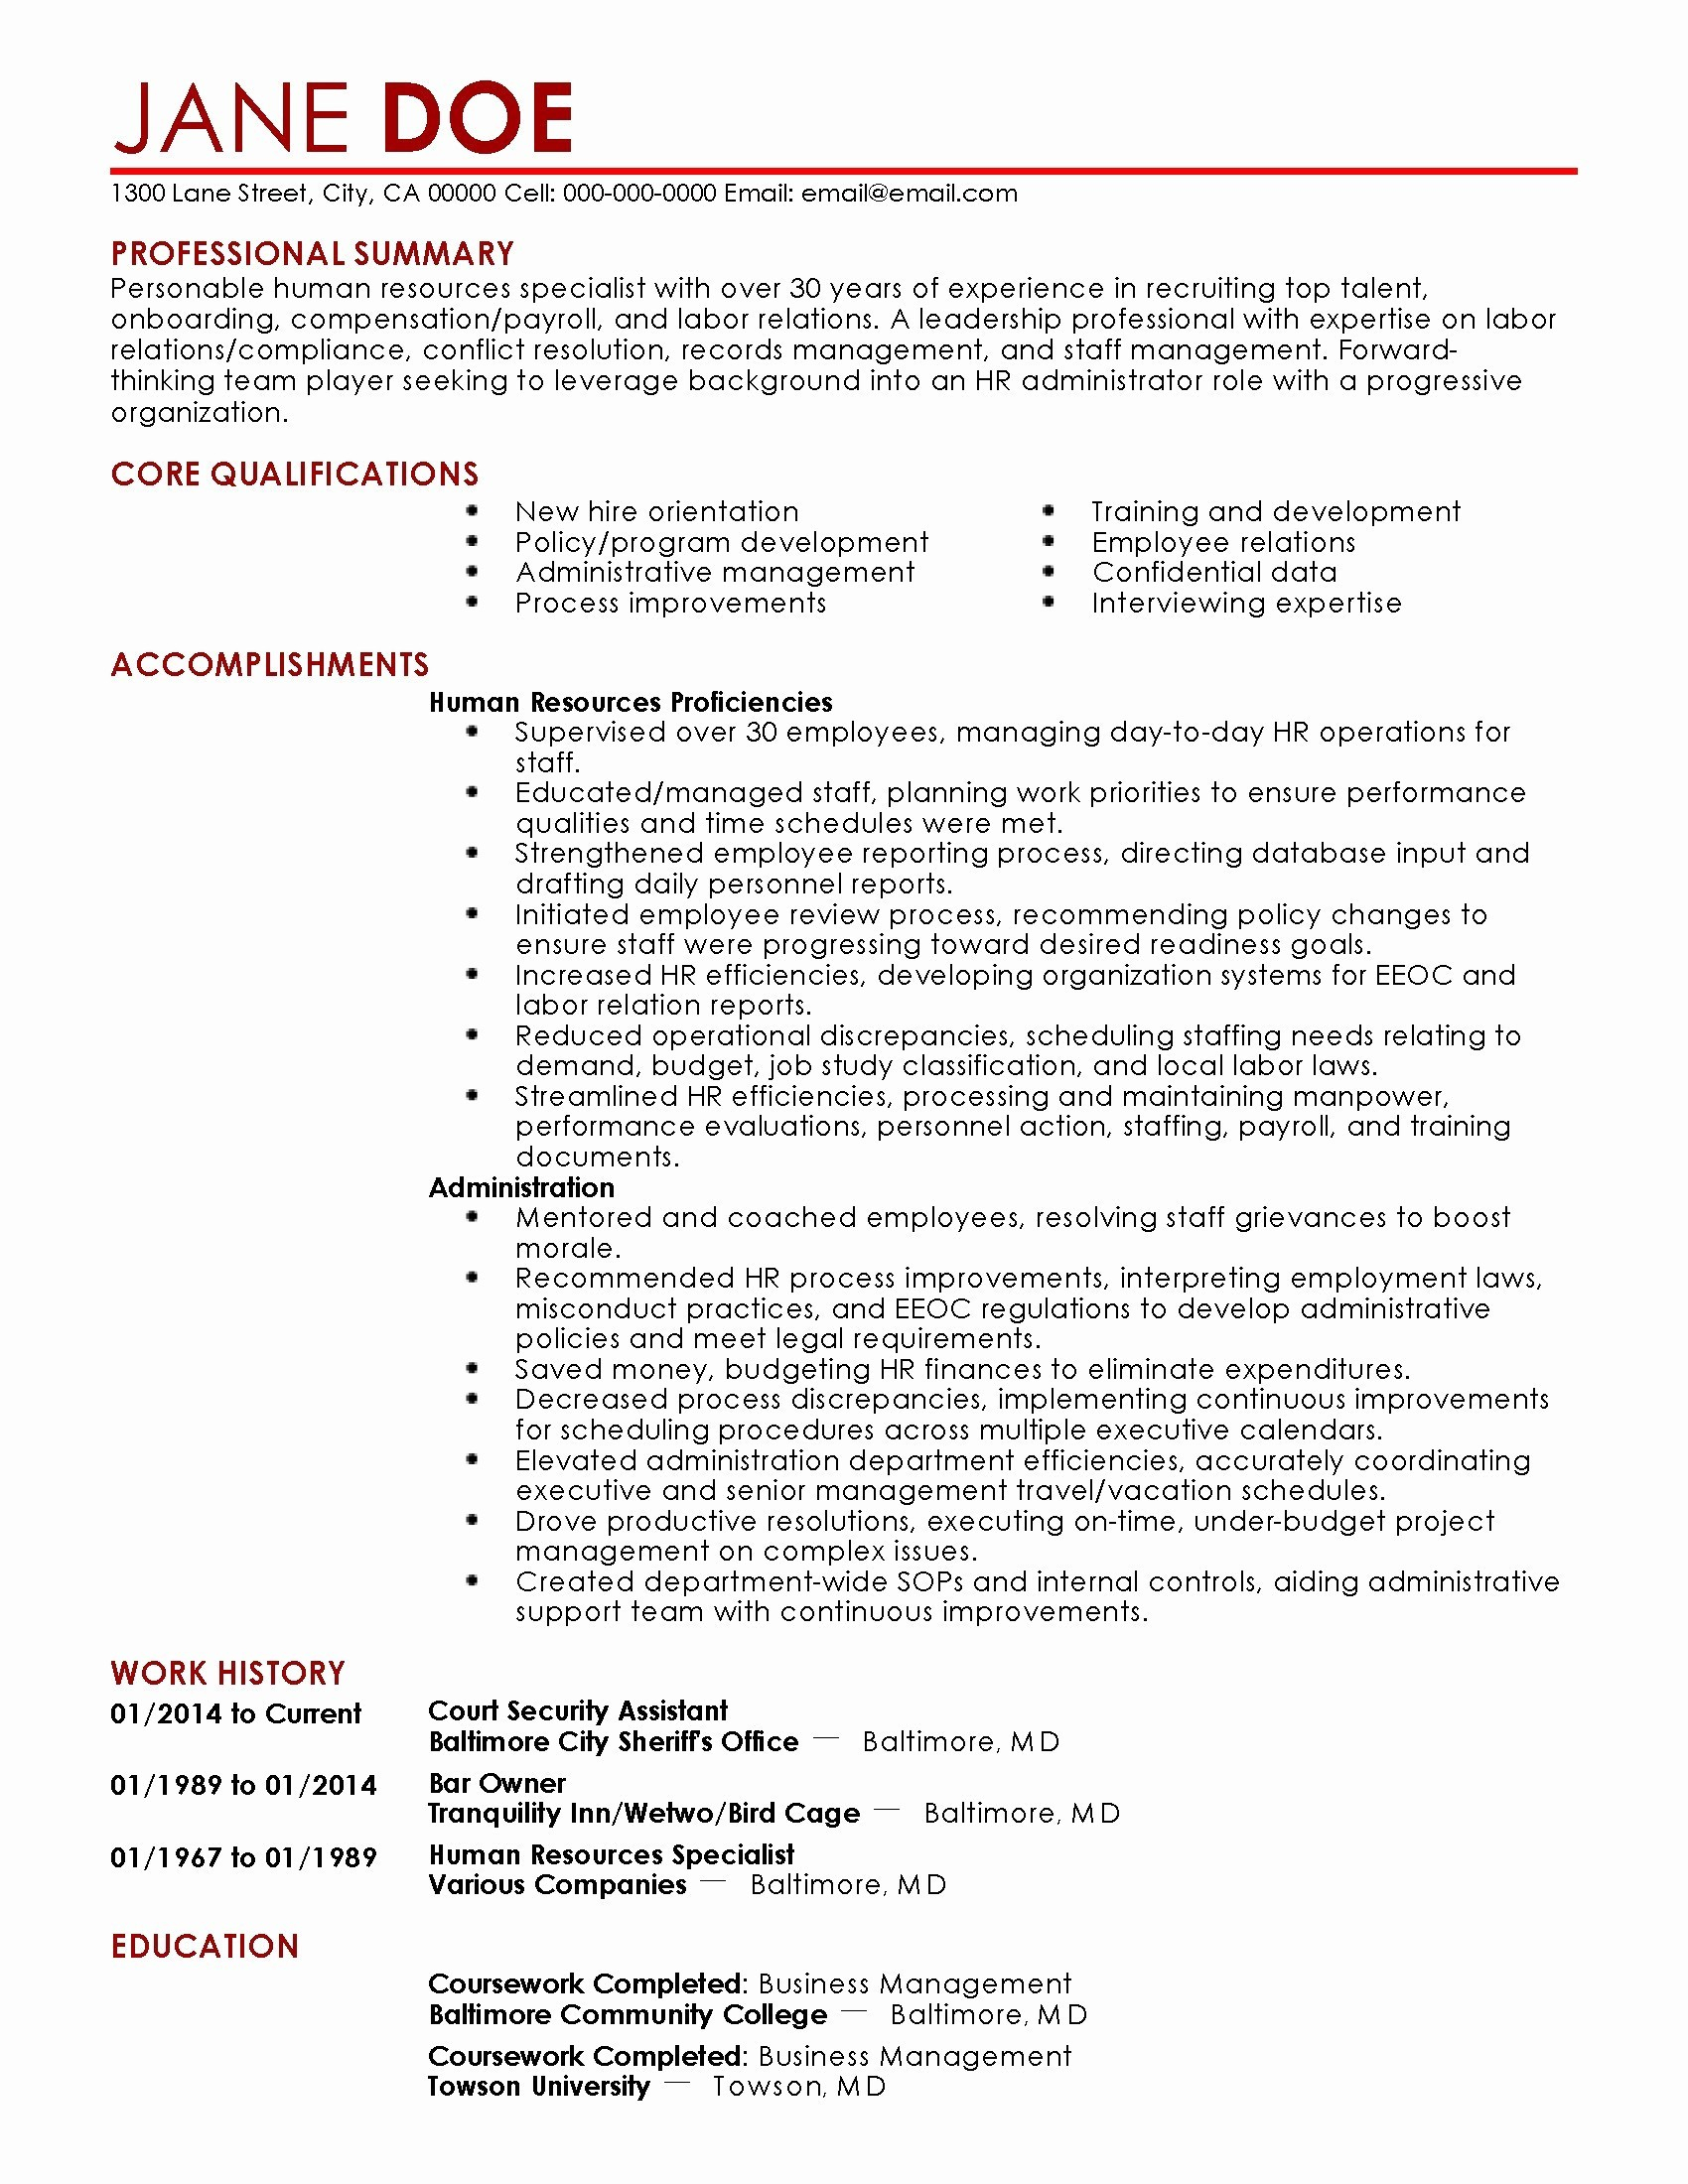 Medical assistant Summary for Resume - 19 Unique Medical assistant Resume Template